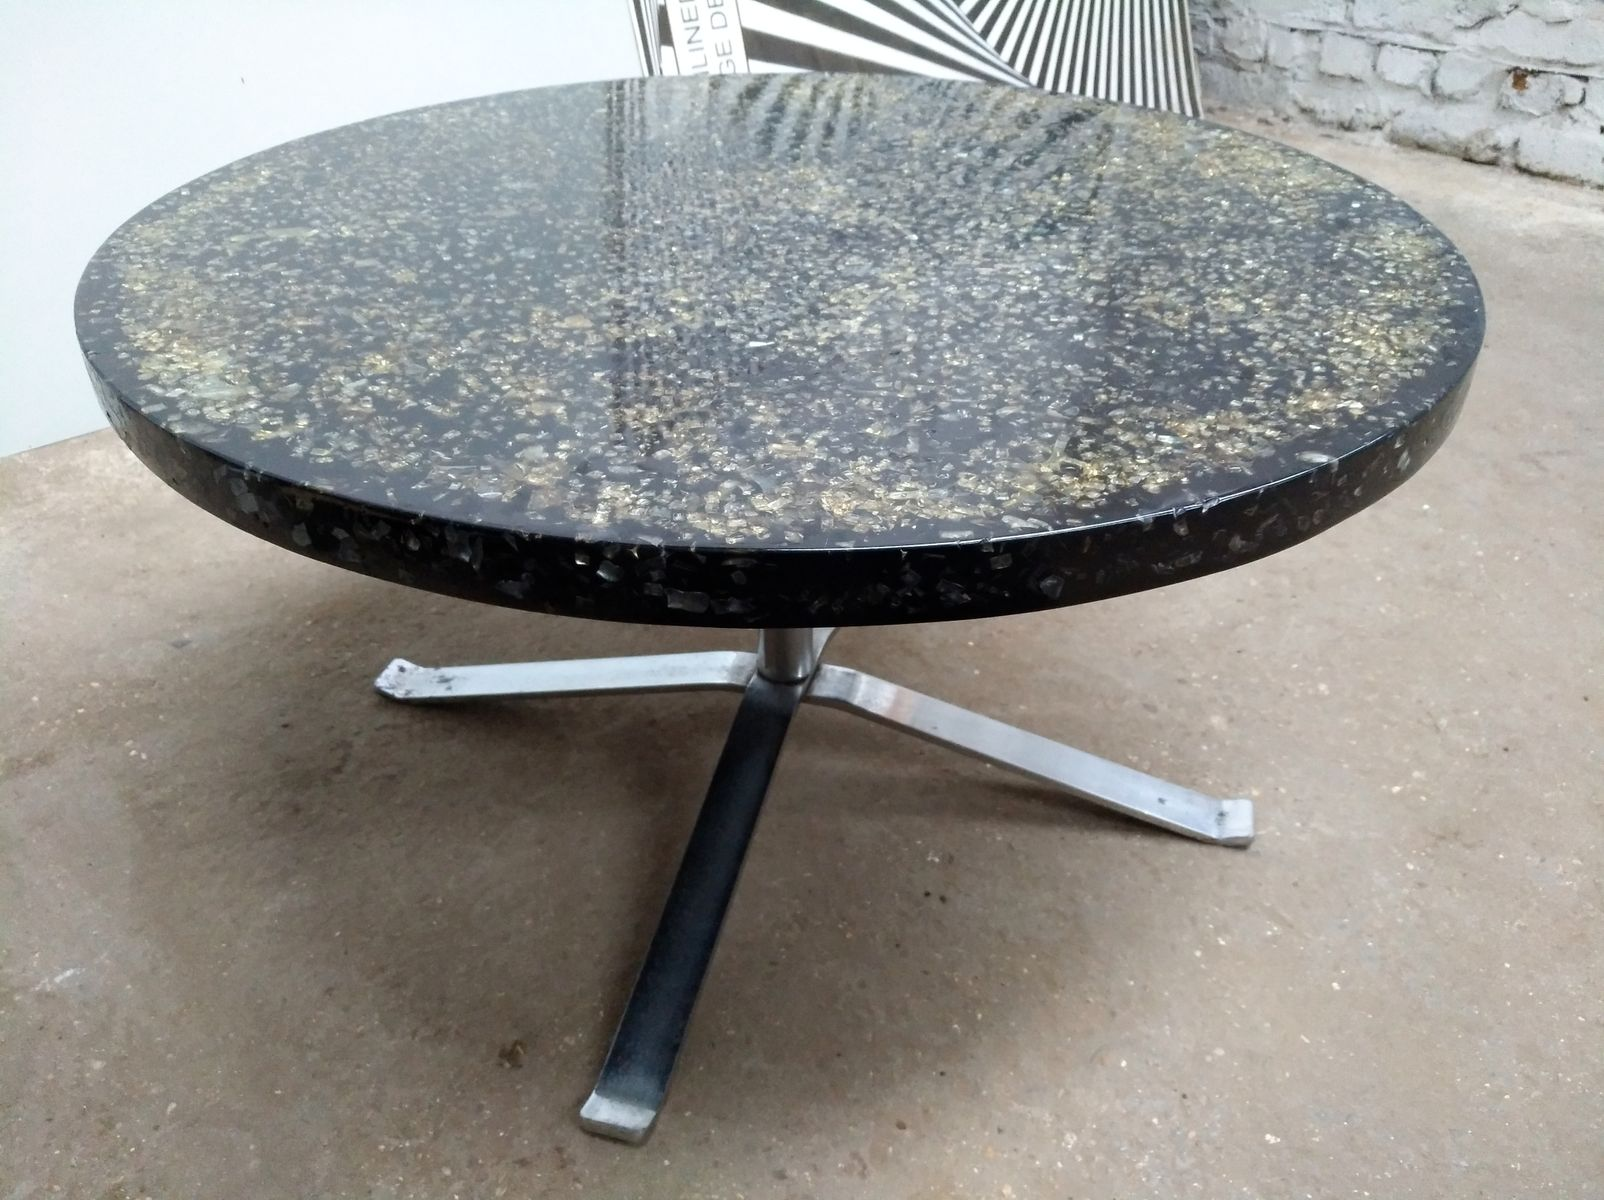 Round Black Resin Coffee Table by Pierre Giraudon 1970s for sale